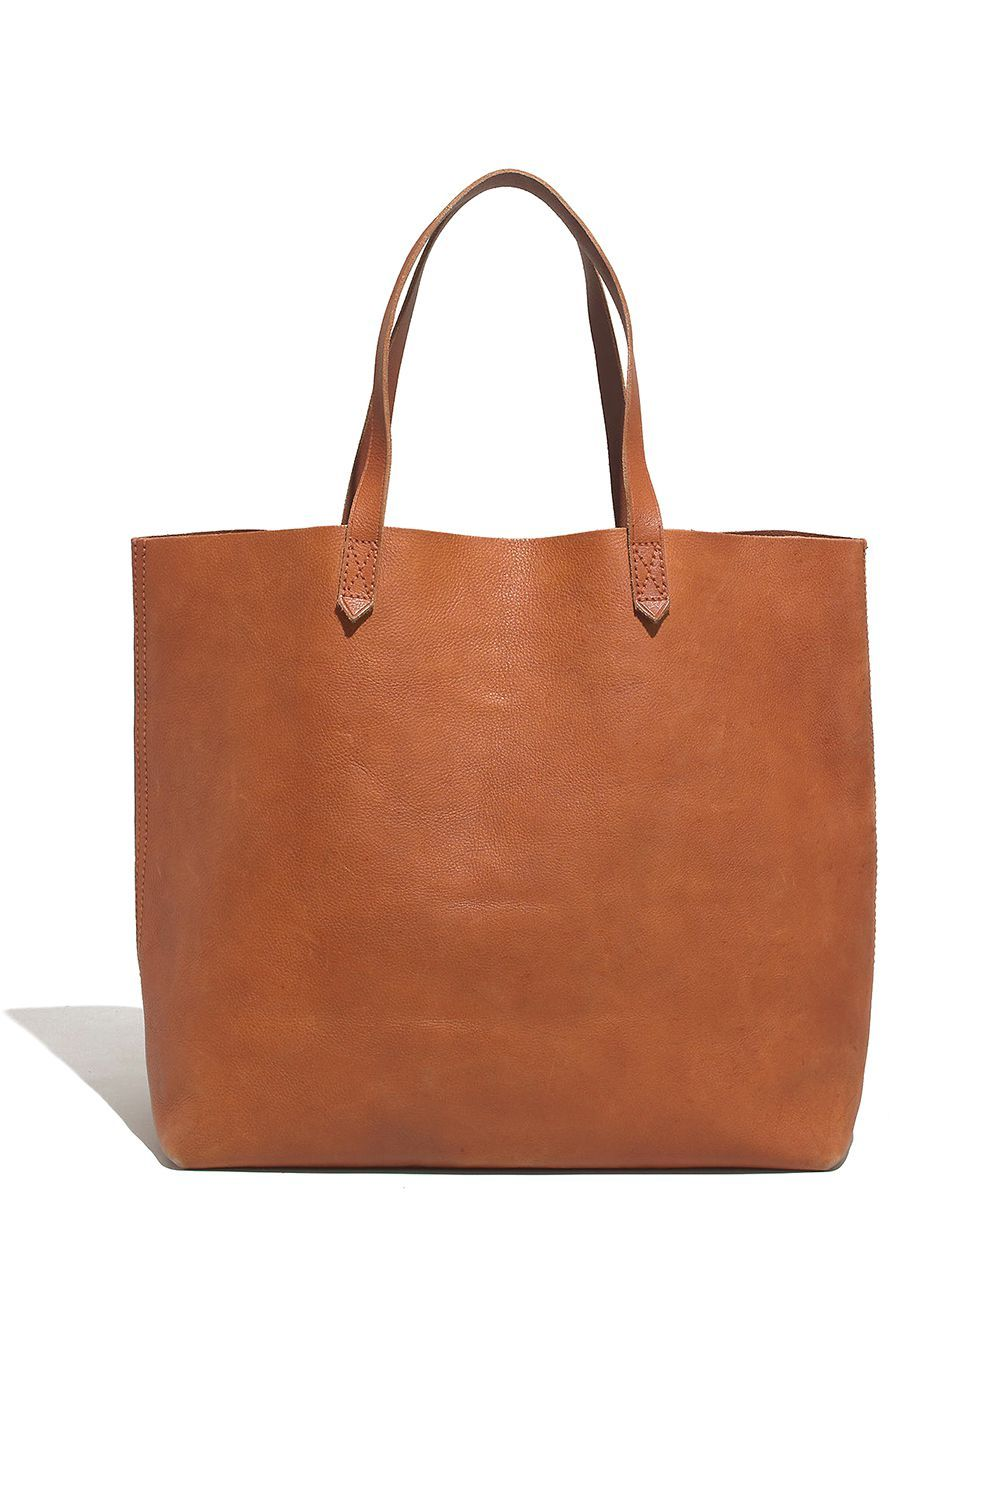 The Transportable Tote Madewell $168.00 SHOP IT Make it personal and customize this boho transport tote with mom's initials (or you and your siblings'). It can fit all of the essentials—phone, wallet, receipts, makeup, laptop—and then some.